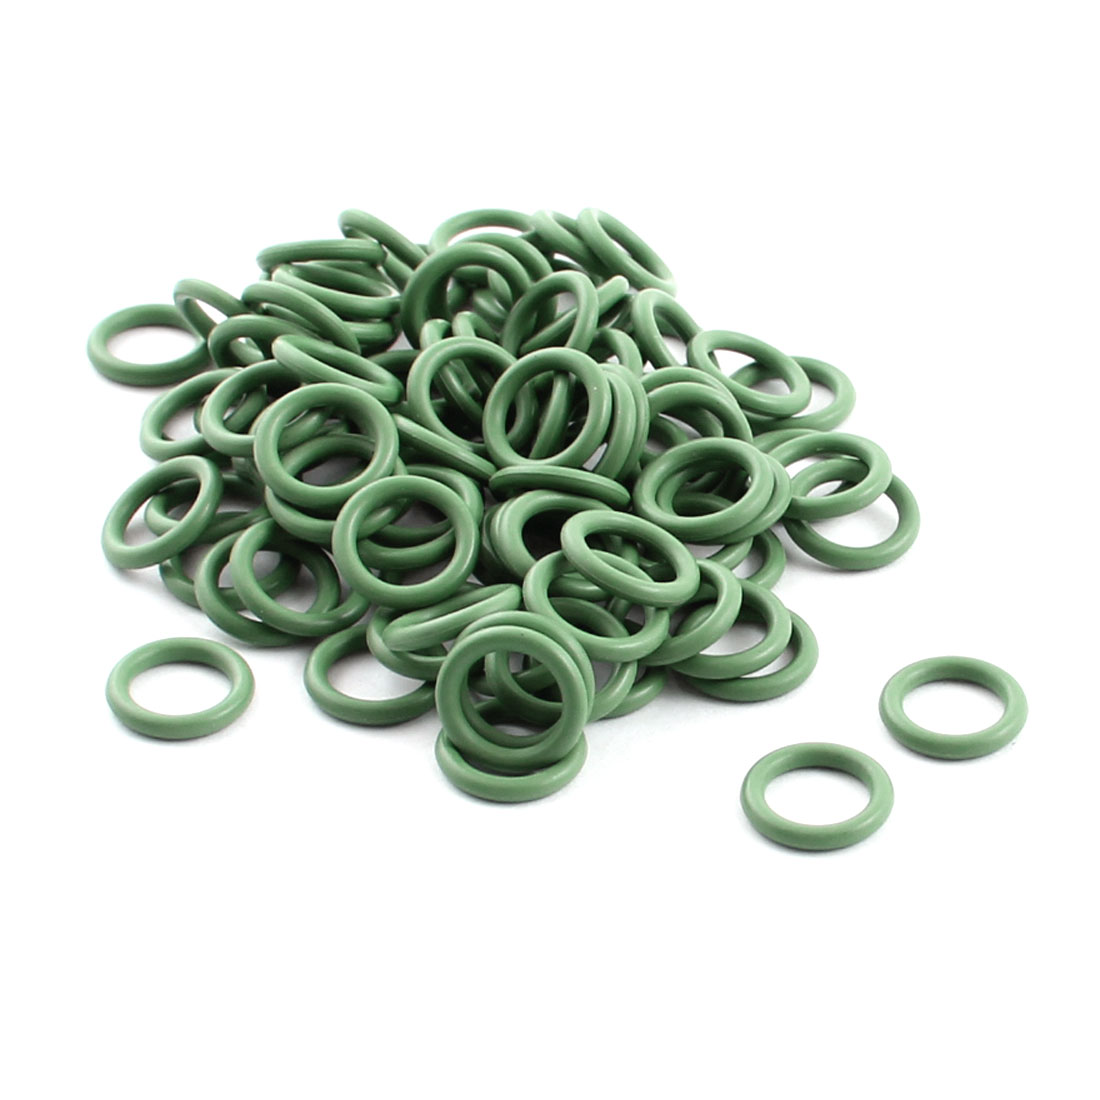 100 Pcs Green Rubber 9mm x 6mm x 1.5mm Oil Seal O Rings Gaskets Washers